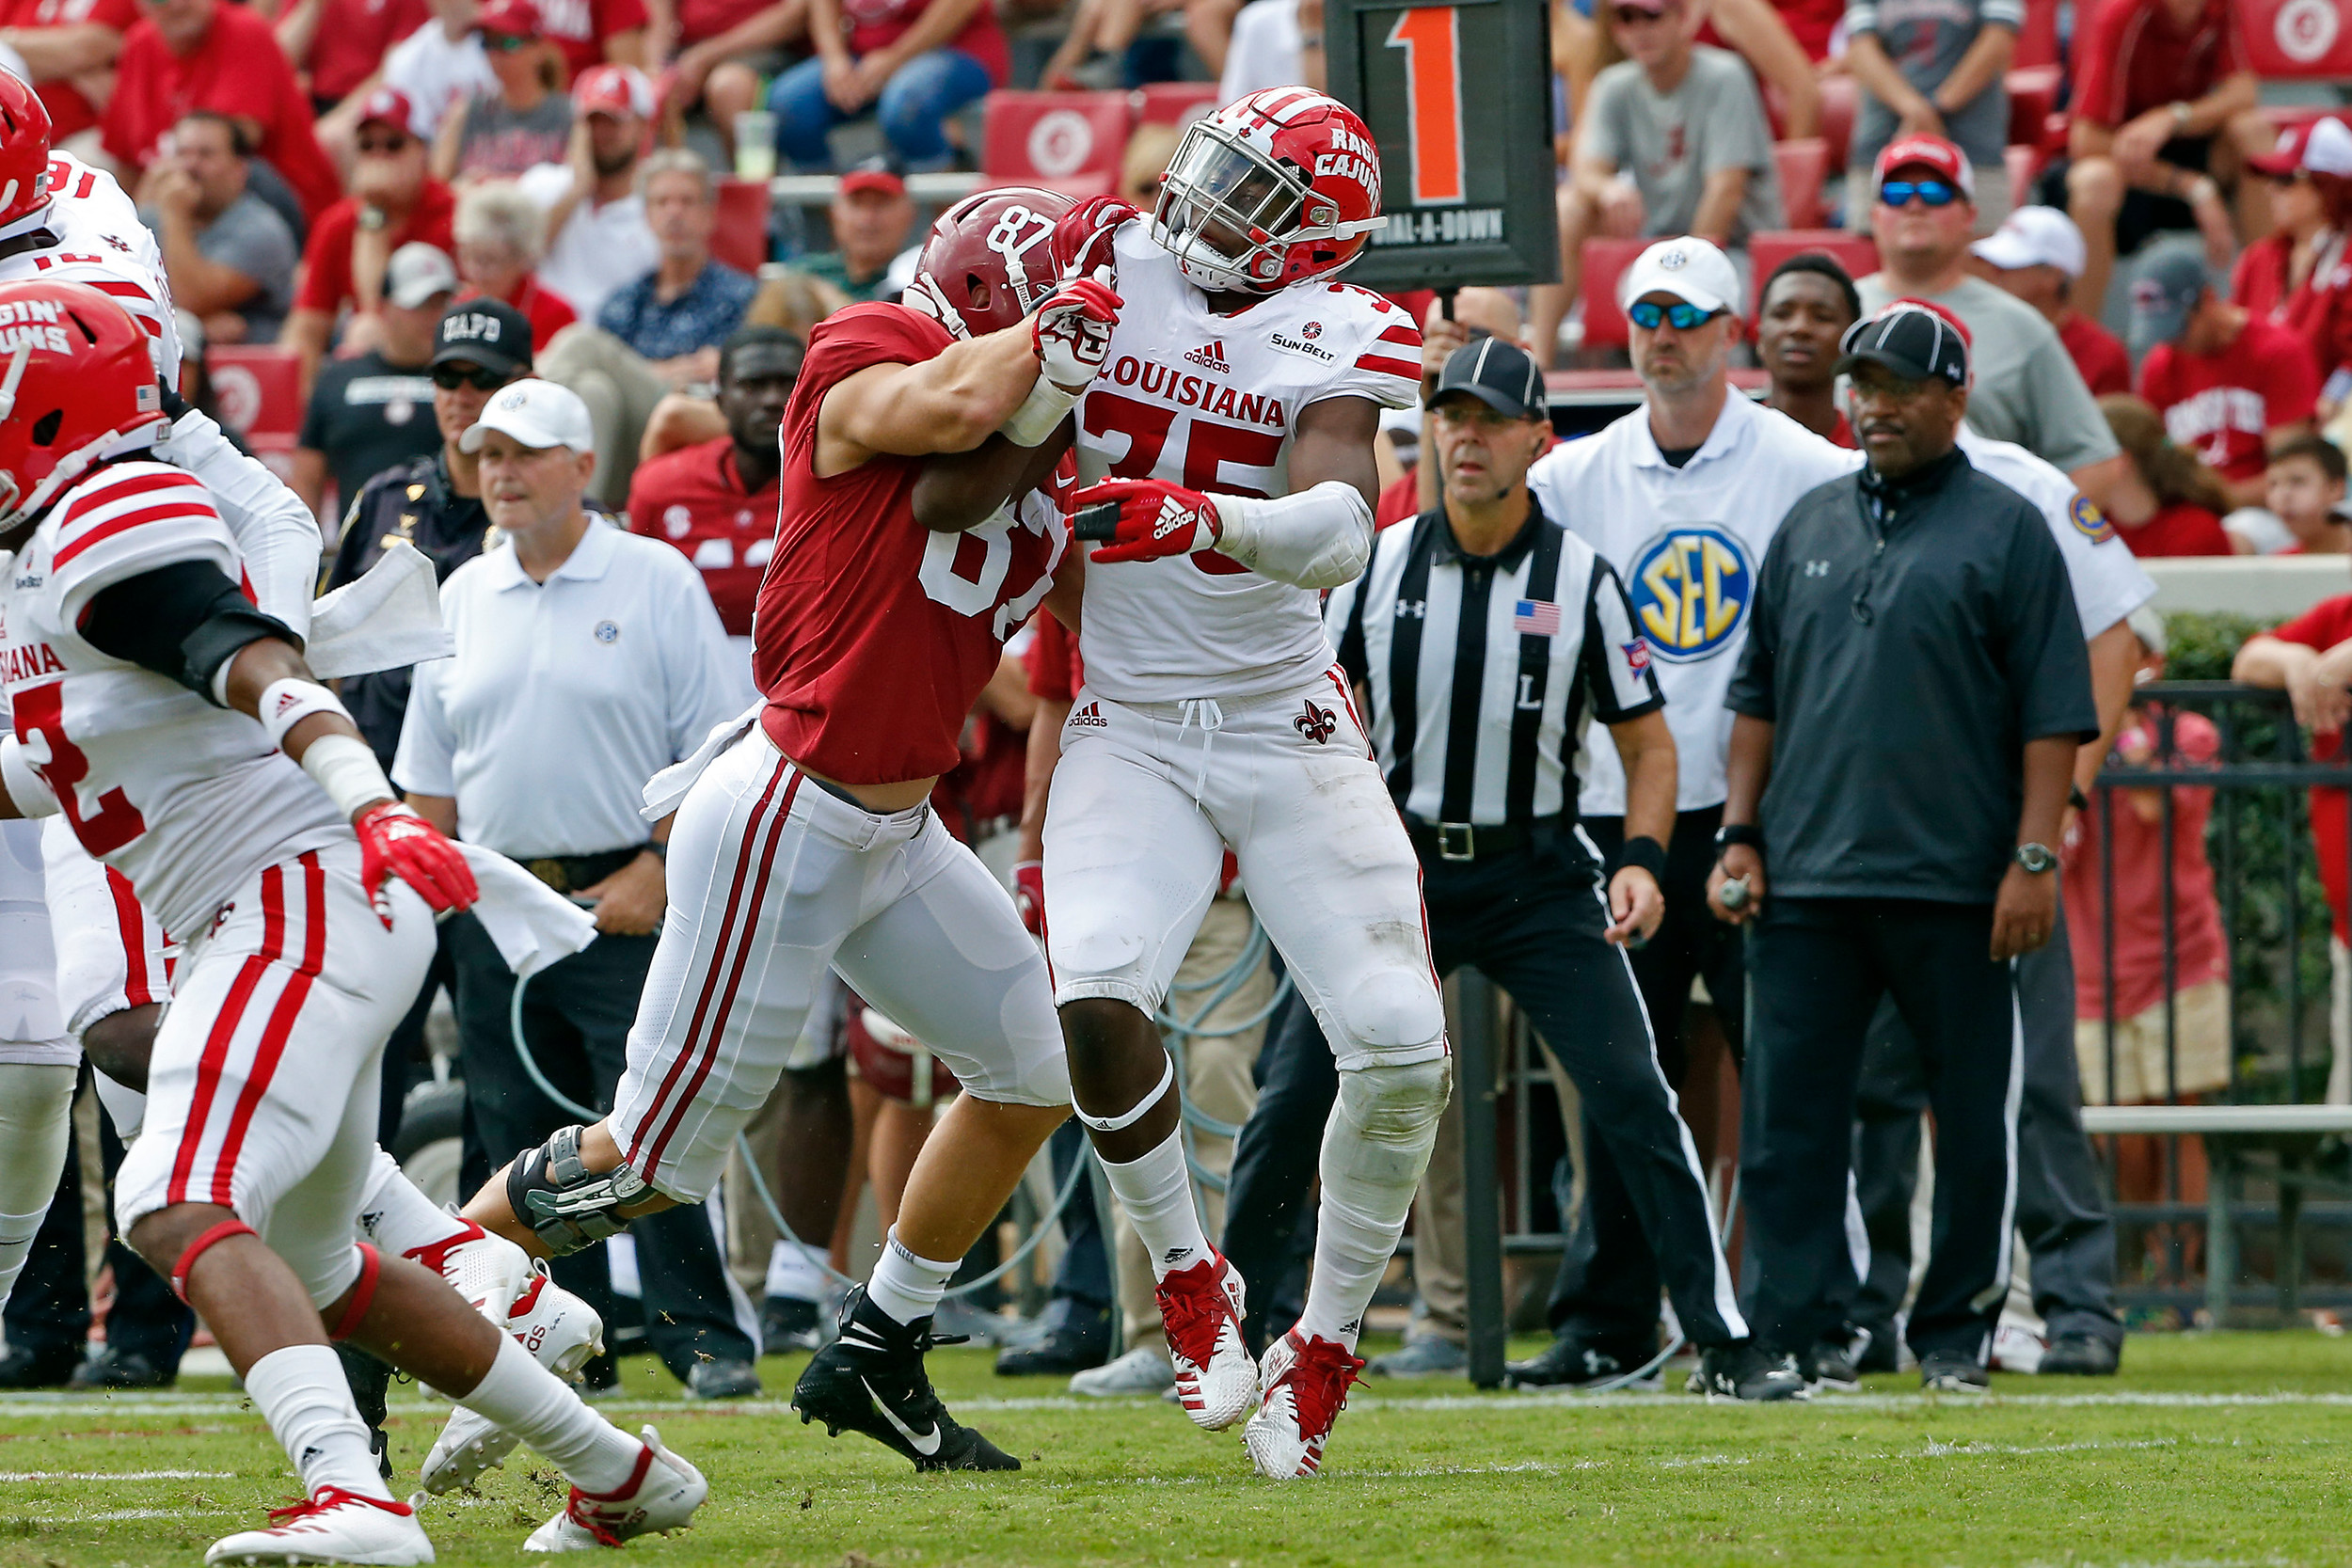 Alabama Crimson Tide tight end Miller Forristall (87) makes a block at Bryant-Denny Stadium in Tuscaloosa, Al on September 29, 2018. Jason Clark / Daily Mountain Eagle